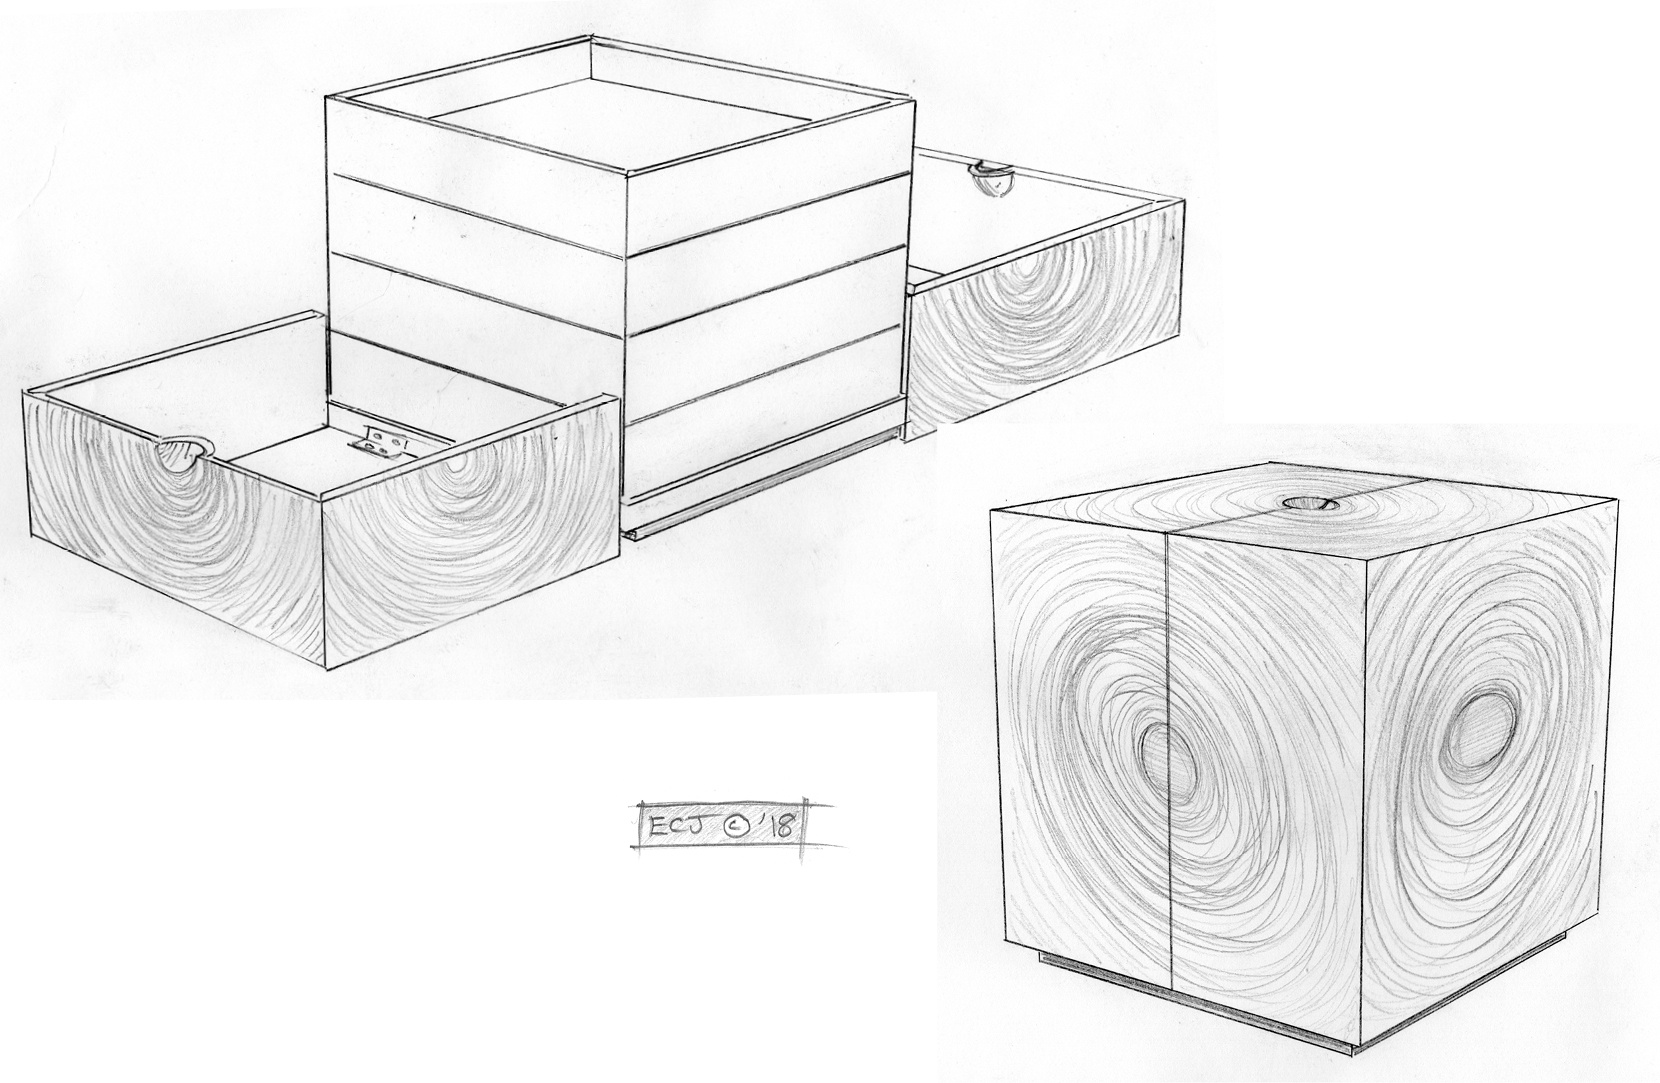 Two pencil drawings showing the Squaring the Circle jewellery box open and closed.